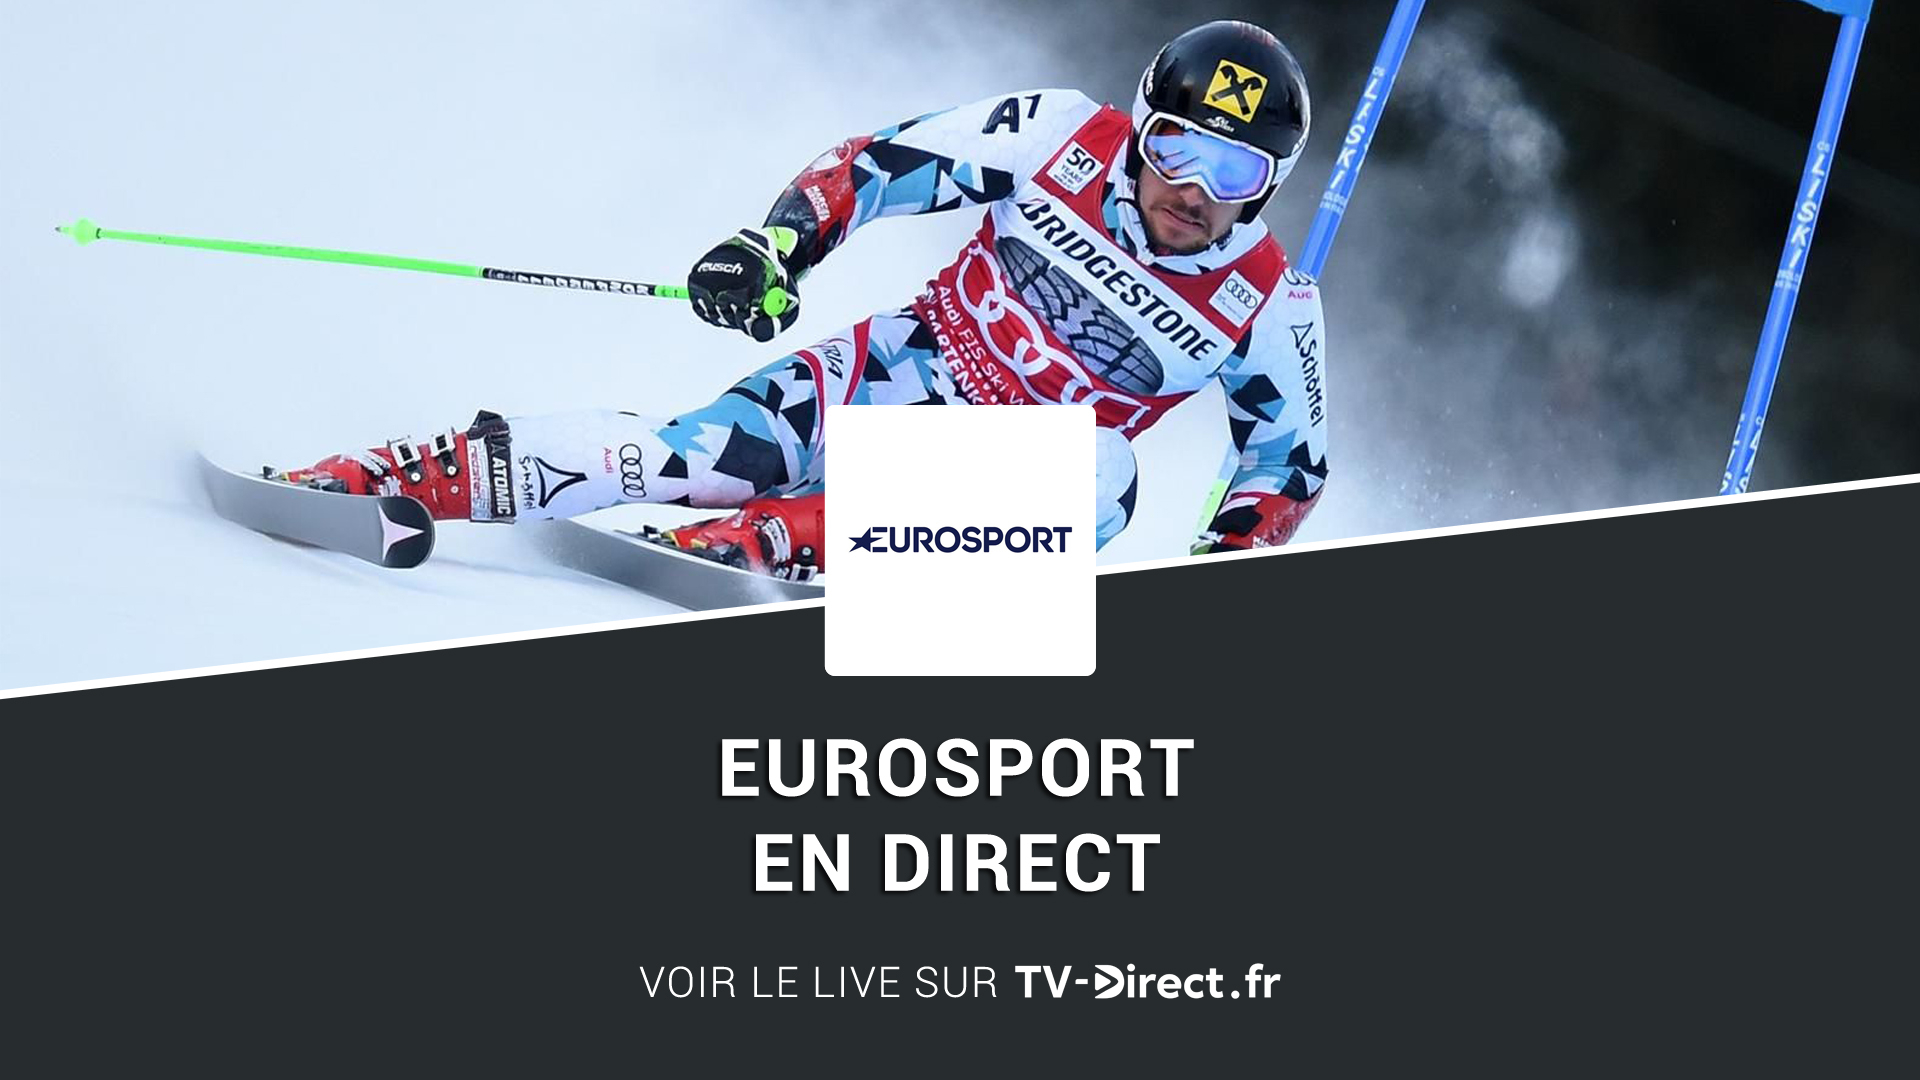 eurosport direct regarder eurosport france live sur internet. Black Bedroom Furniture Sets. Home Design Ideas